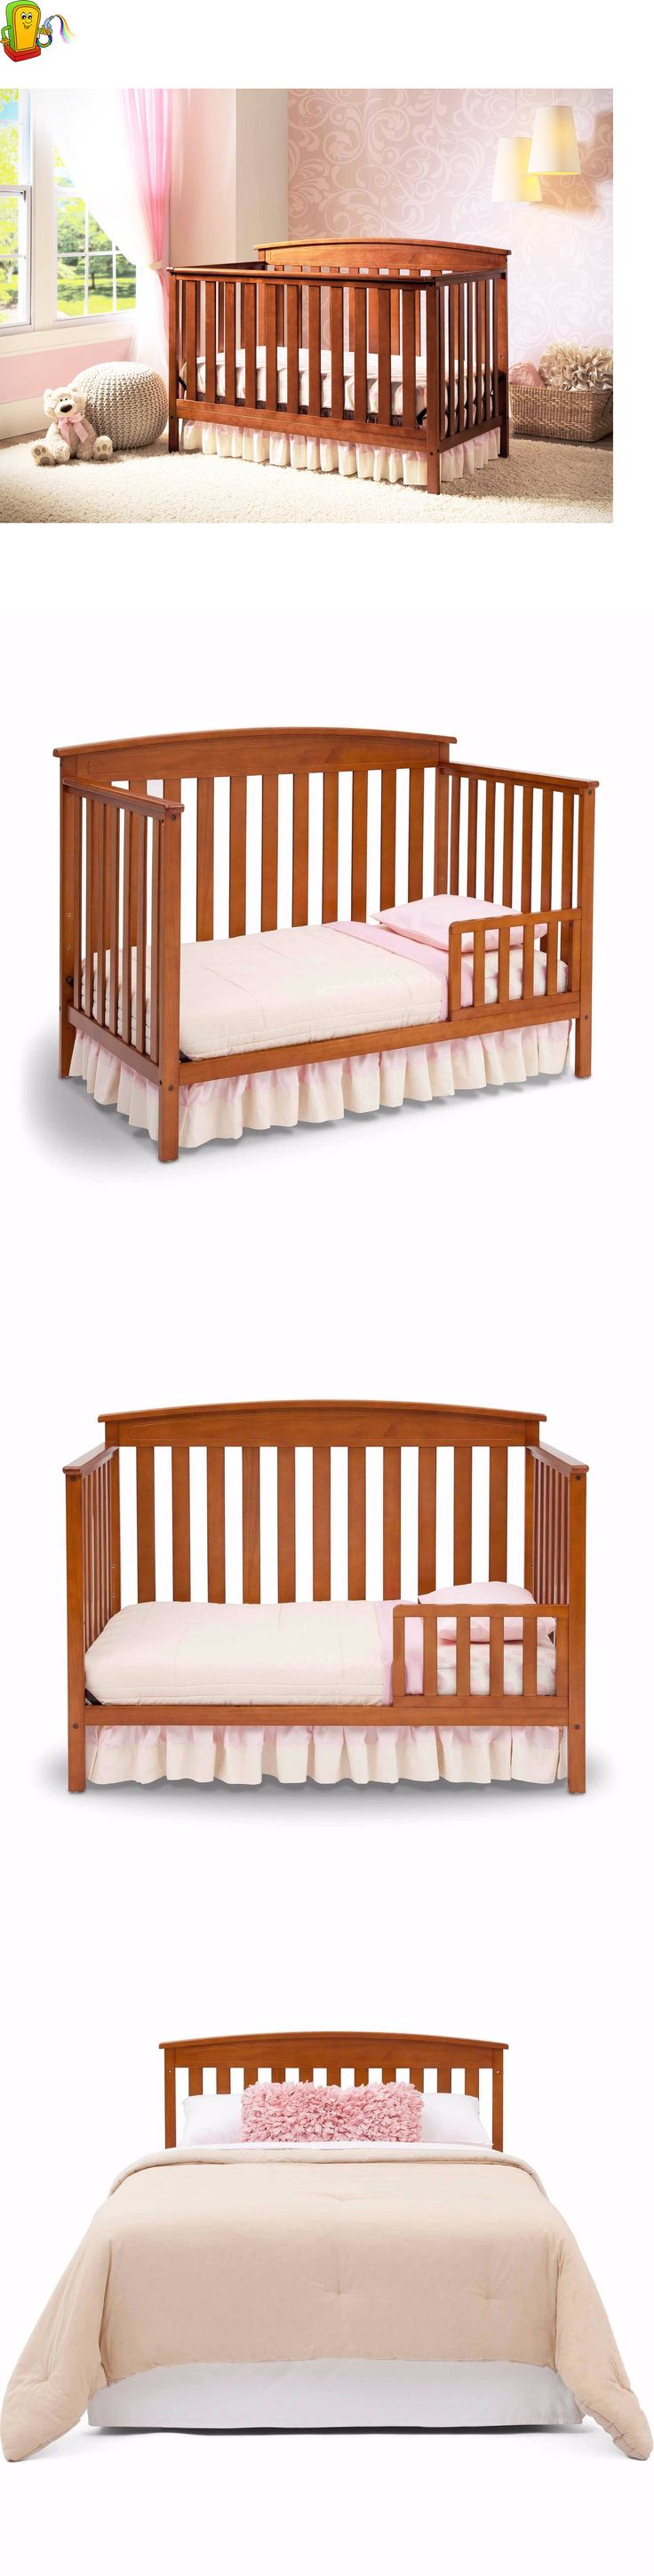 Baby crib youth bed - Baby Nursery Convertible Baby Crib Cot Infant Nursery Newborn Bed Mattress Toddler Daybed